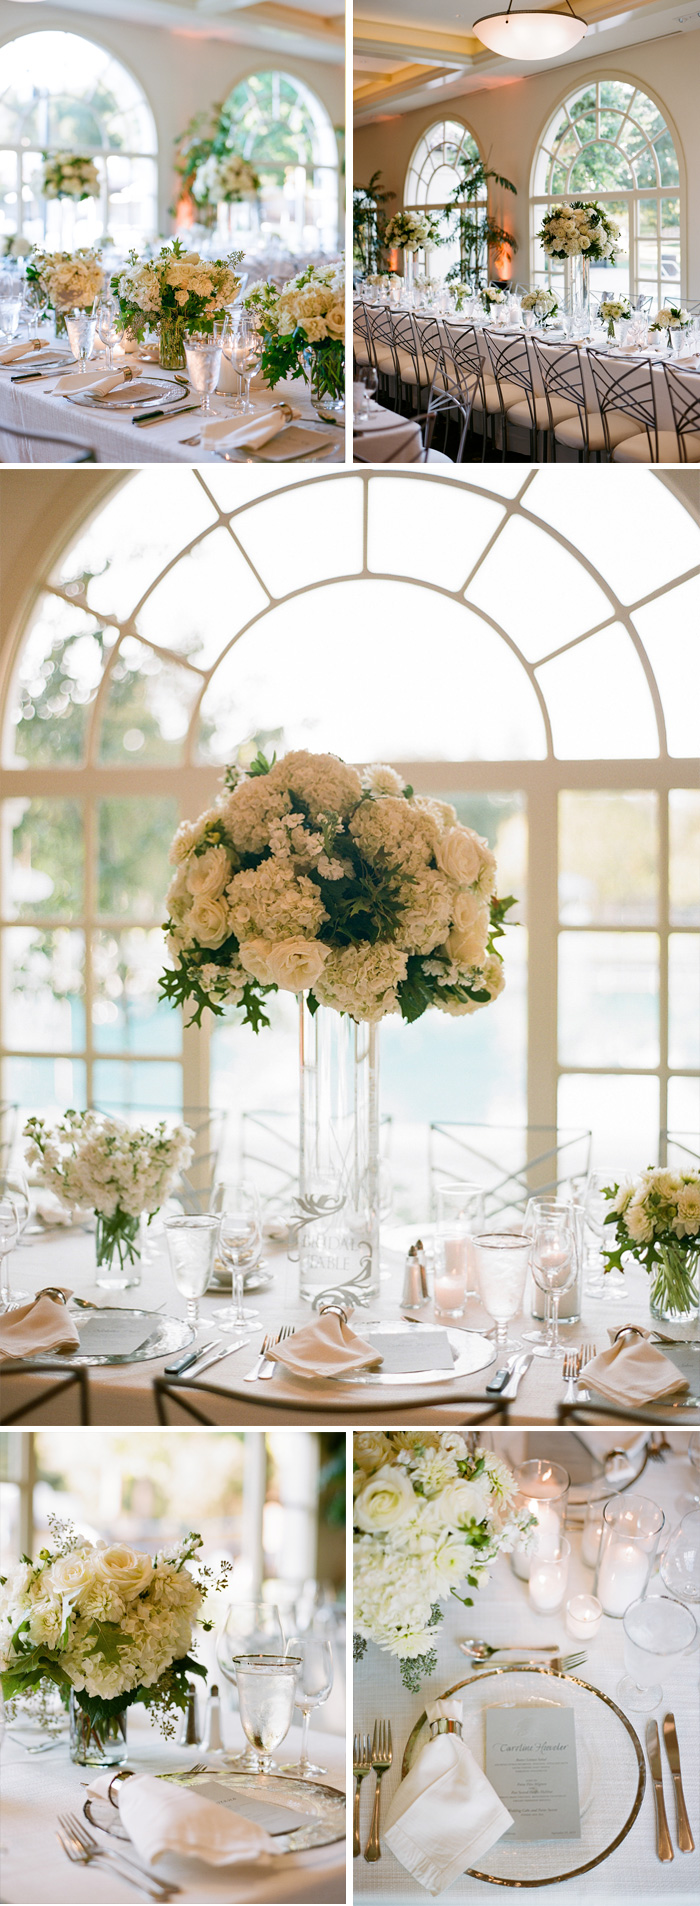 A classic and elegant indoor reception - refined place settings and white florals; photo by Sylvie Gil